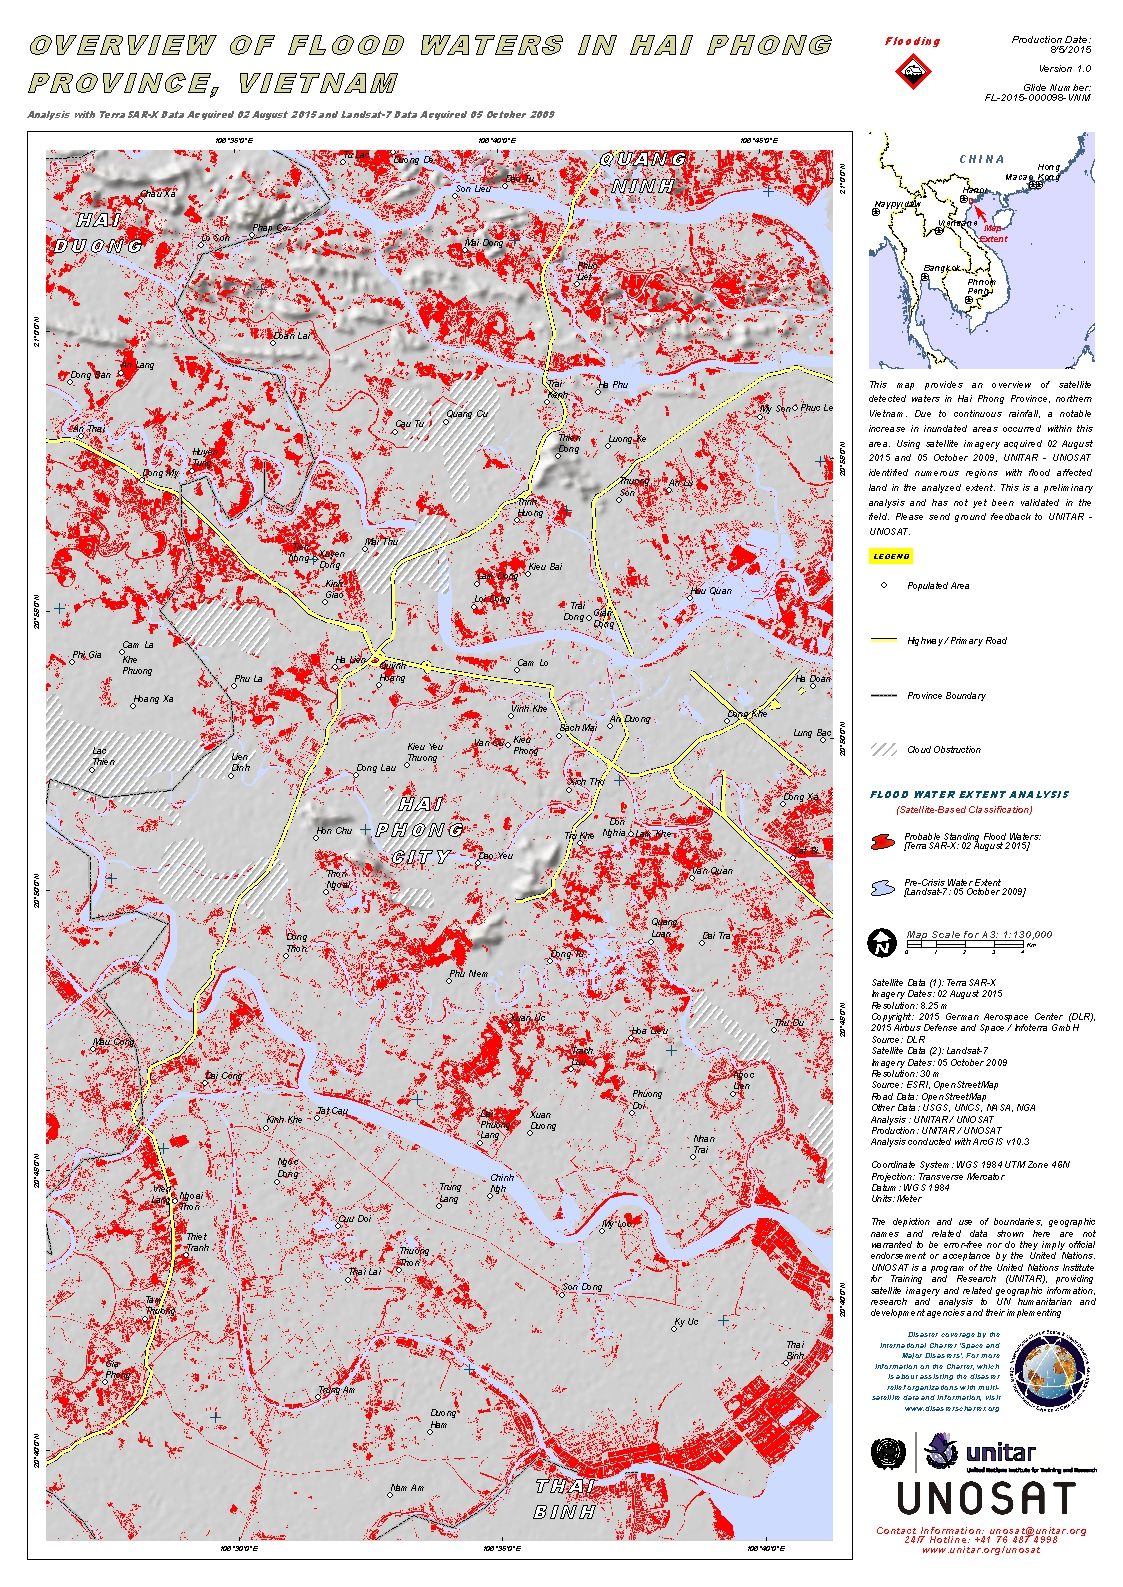 Haiphong Vietnam Map.Overview Of Flood Waters In Hai Phong Province Vietnam Unitar